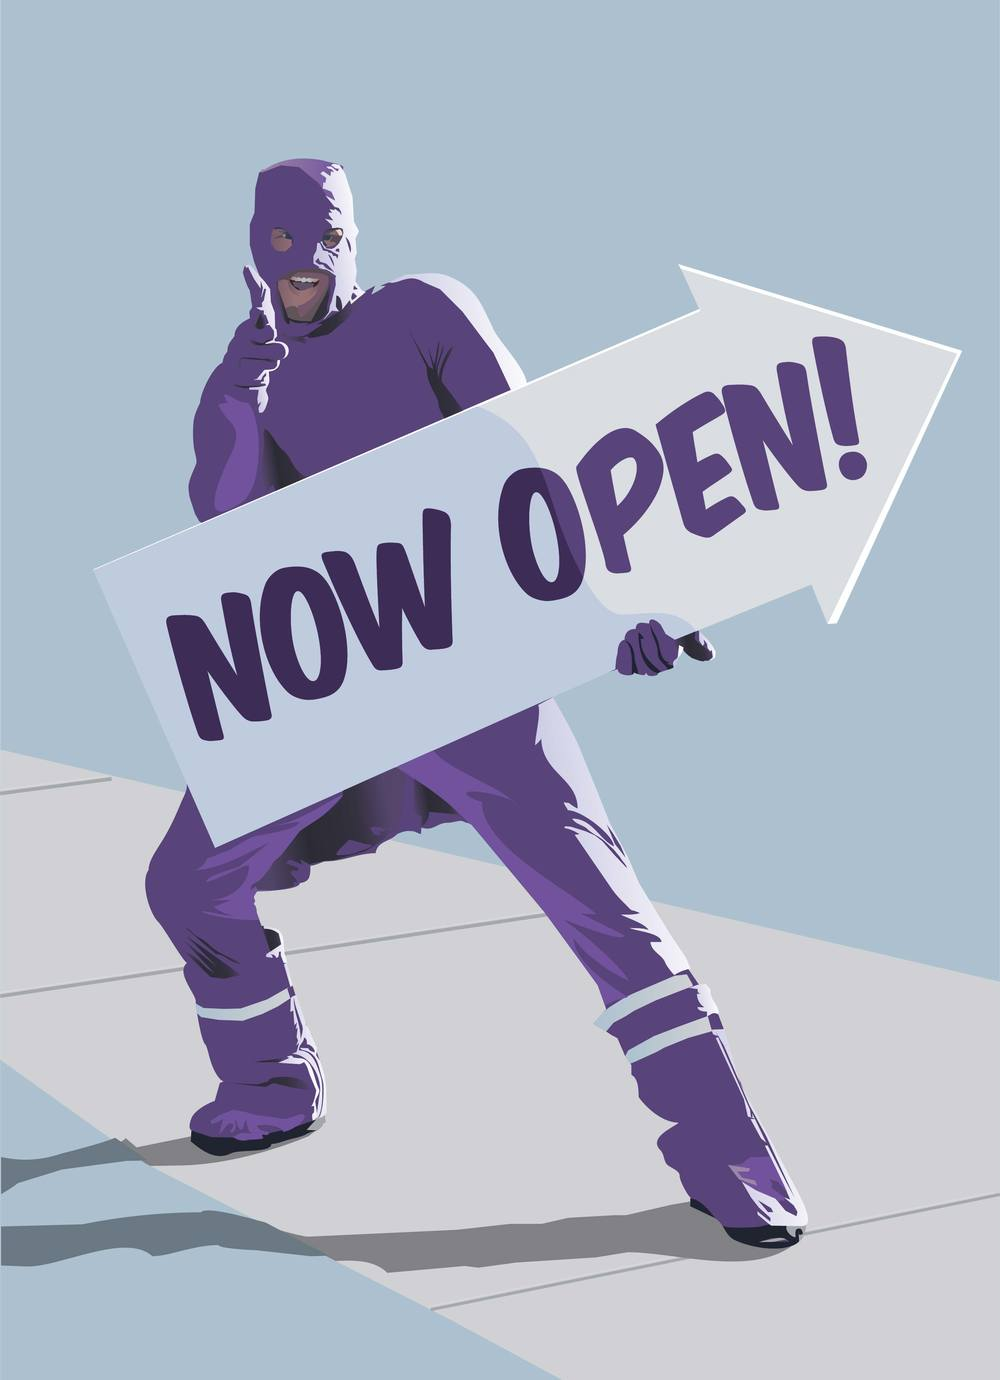 An illustration by Denver illustrator Jonathan Fenske of a sign spinning Purple Man